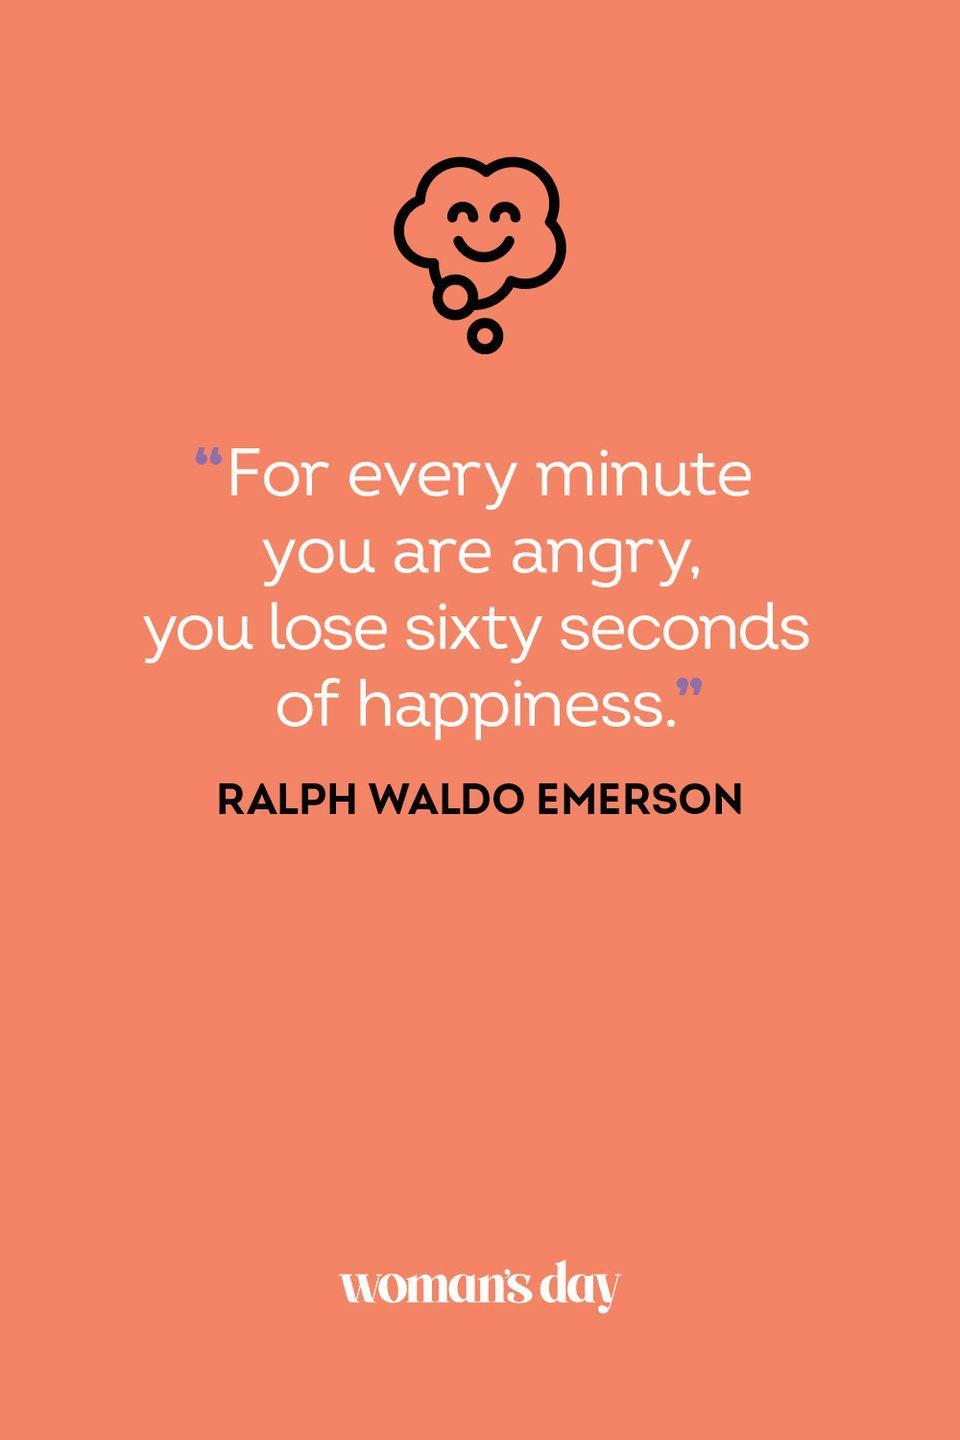 <p>For every minute you are angry, you lose sixty seconds of happiness.</p>